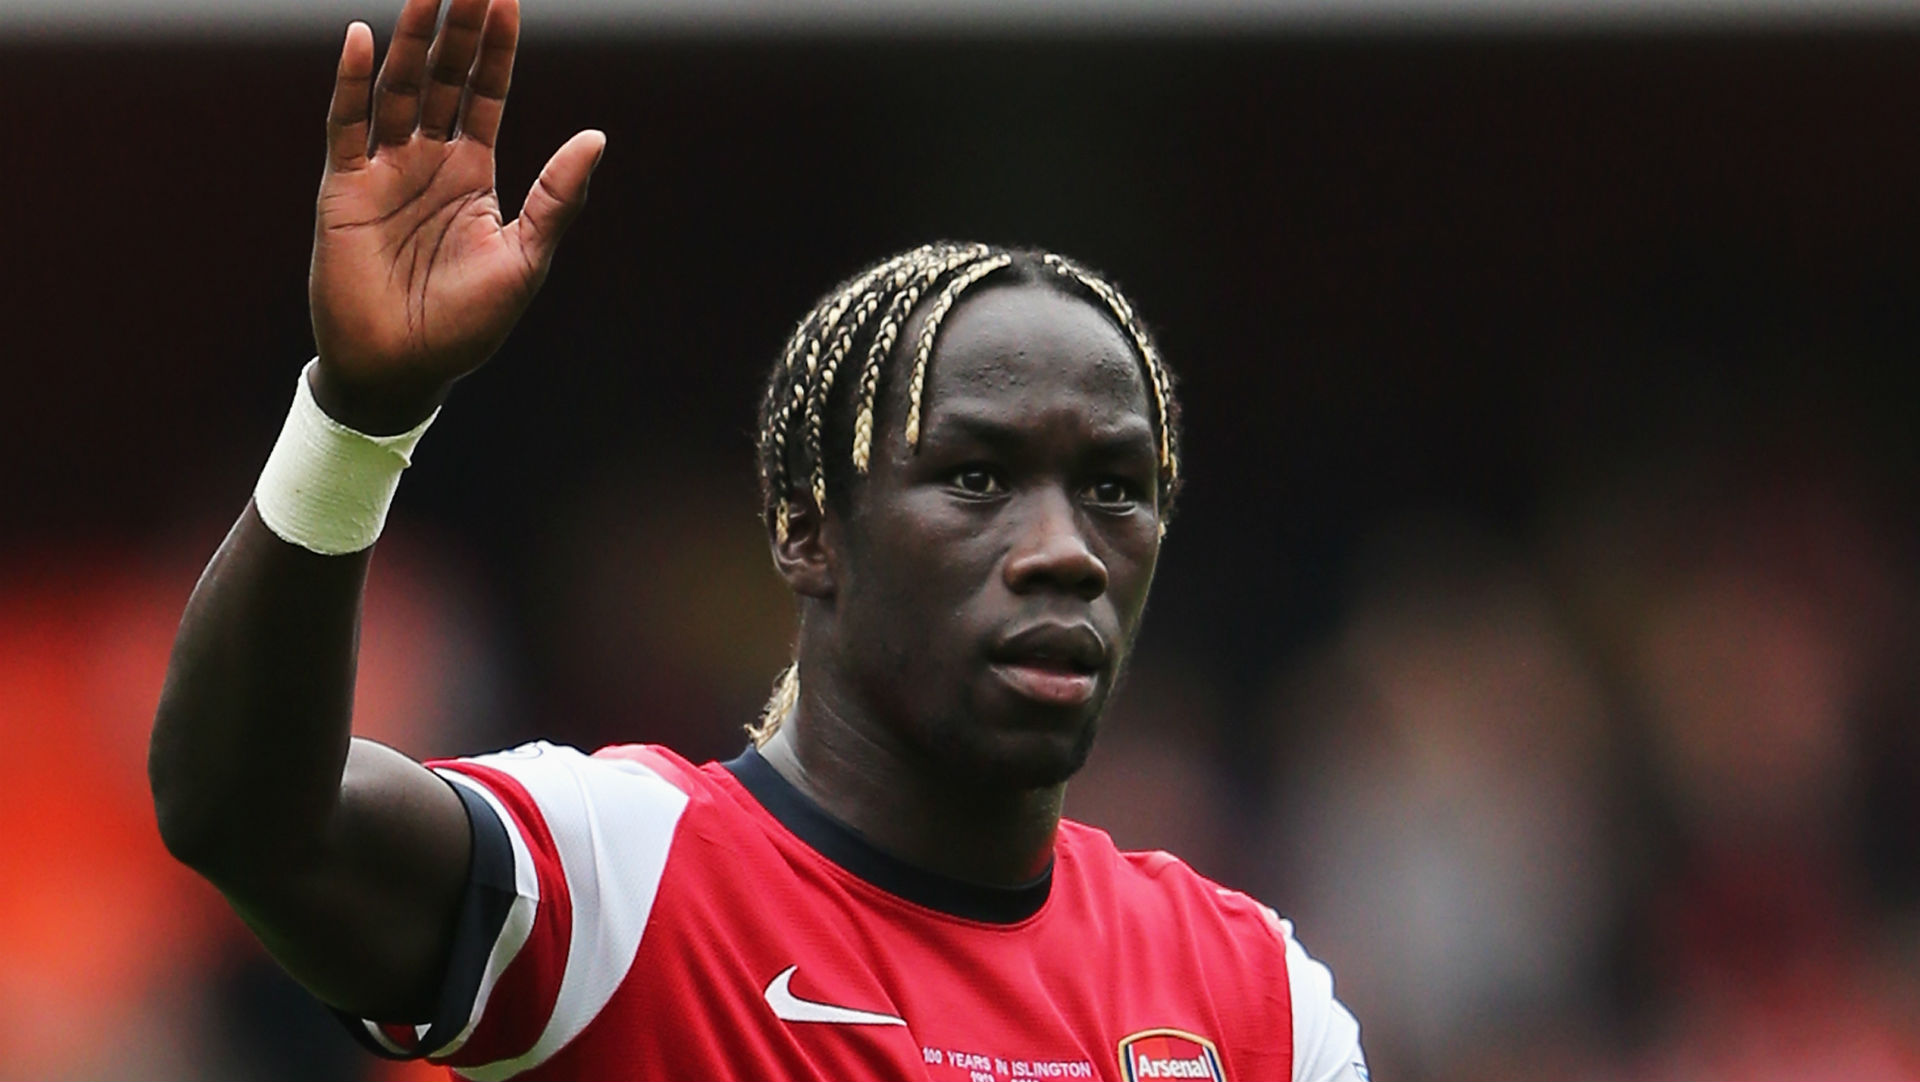 'I felt like a robot' - Ex-Arsenal defender Sagna on suffering serious injury after brother's death